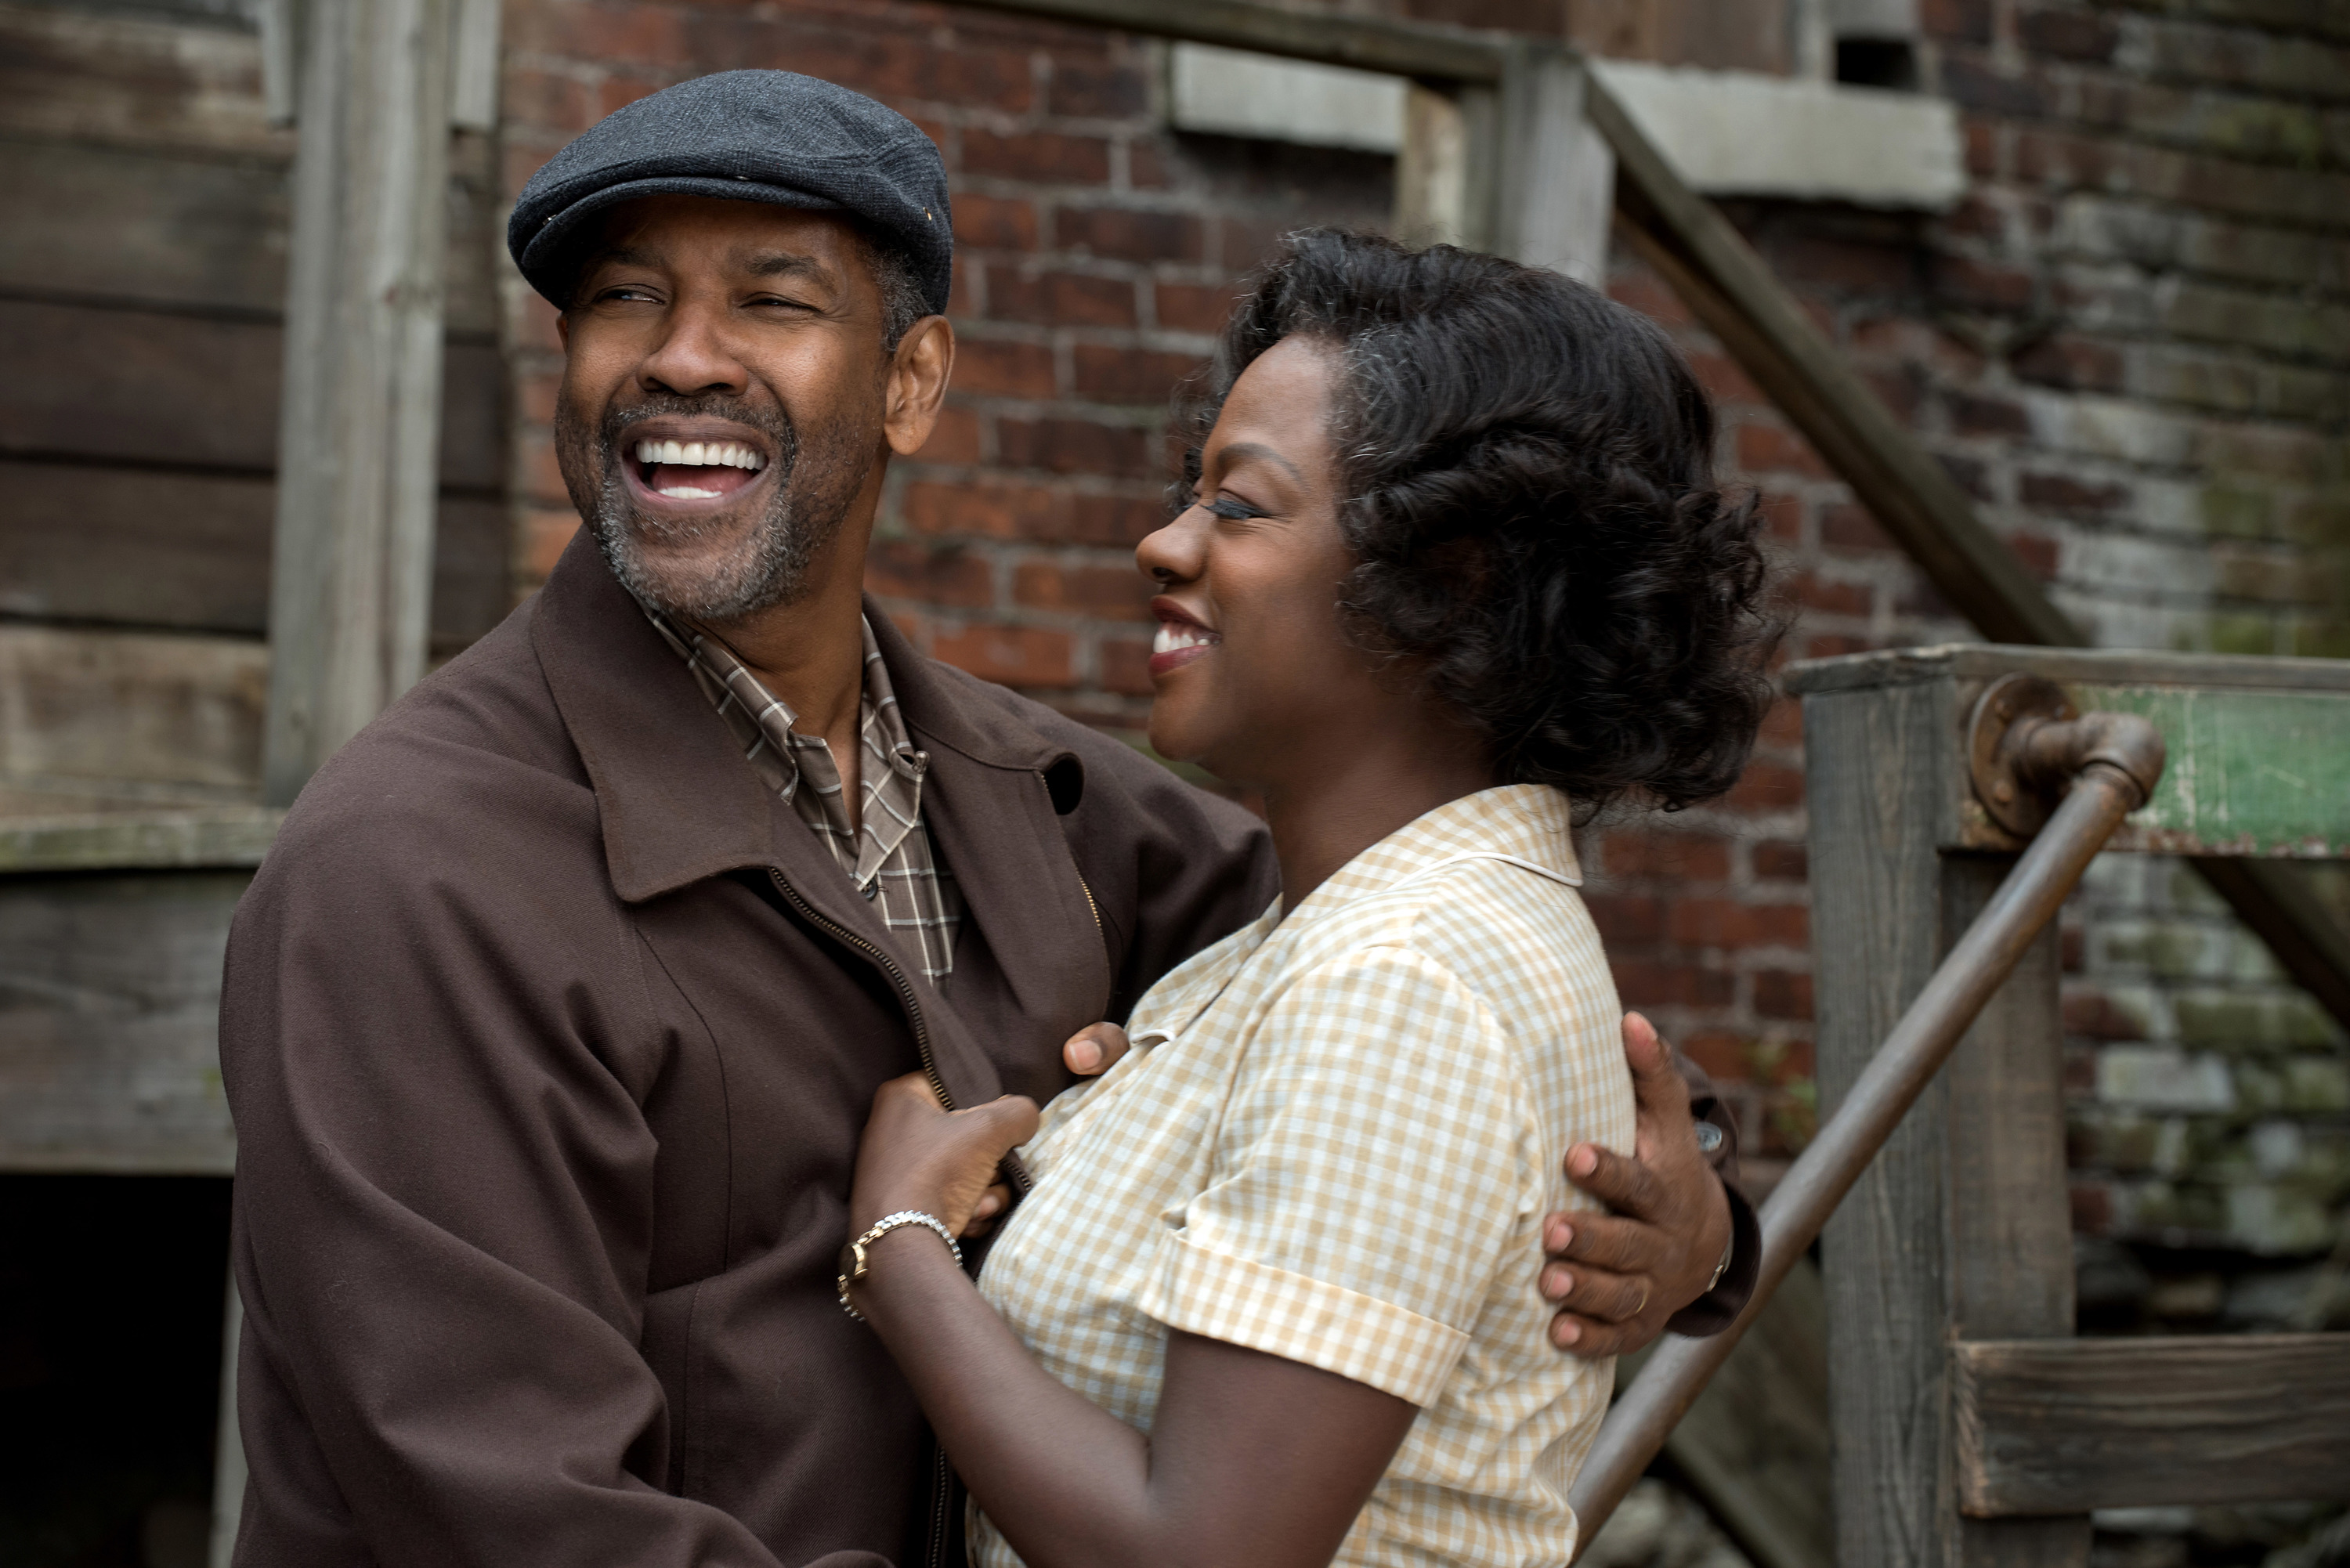 Preview screening of 'Fences' at Rio Dalston